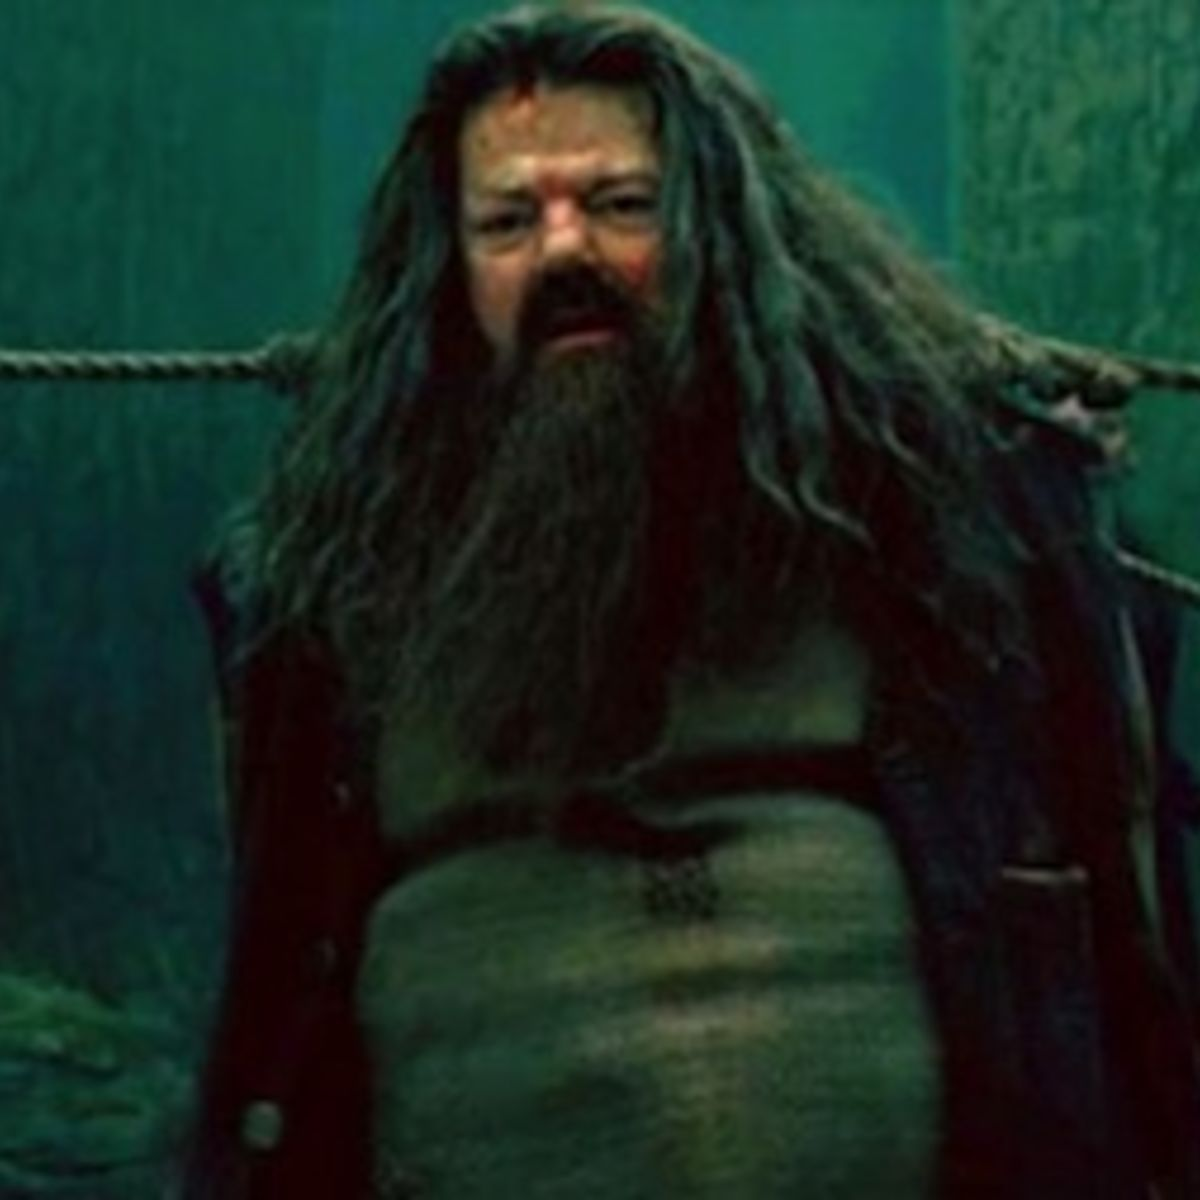 hagrid-harry-potter-and-the-deathly-hallows-part-2.jpg